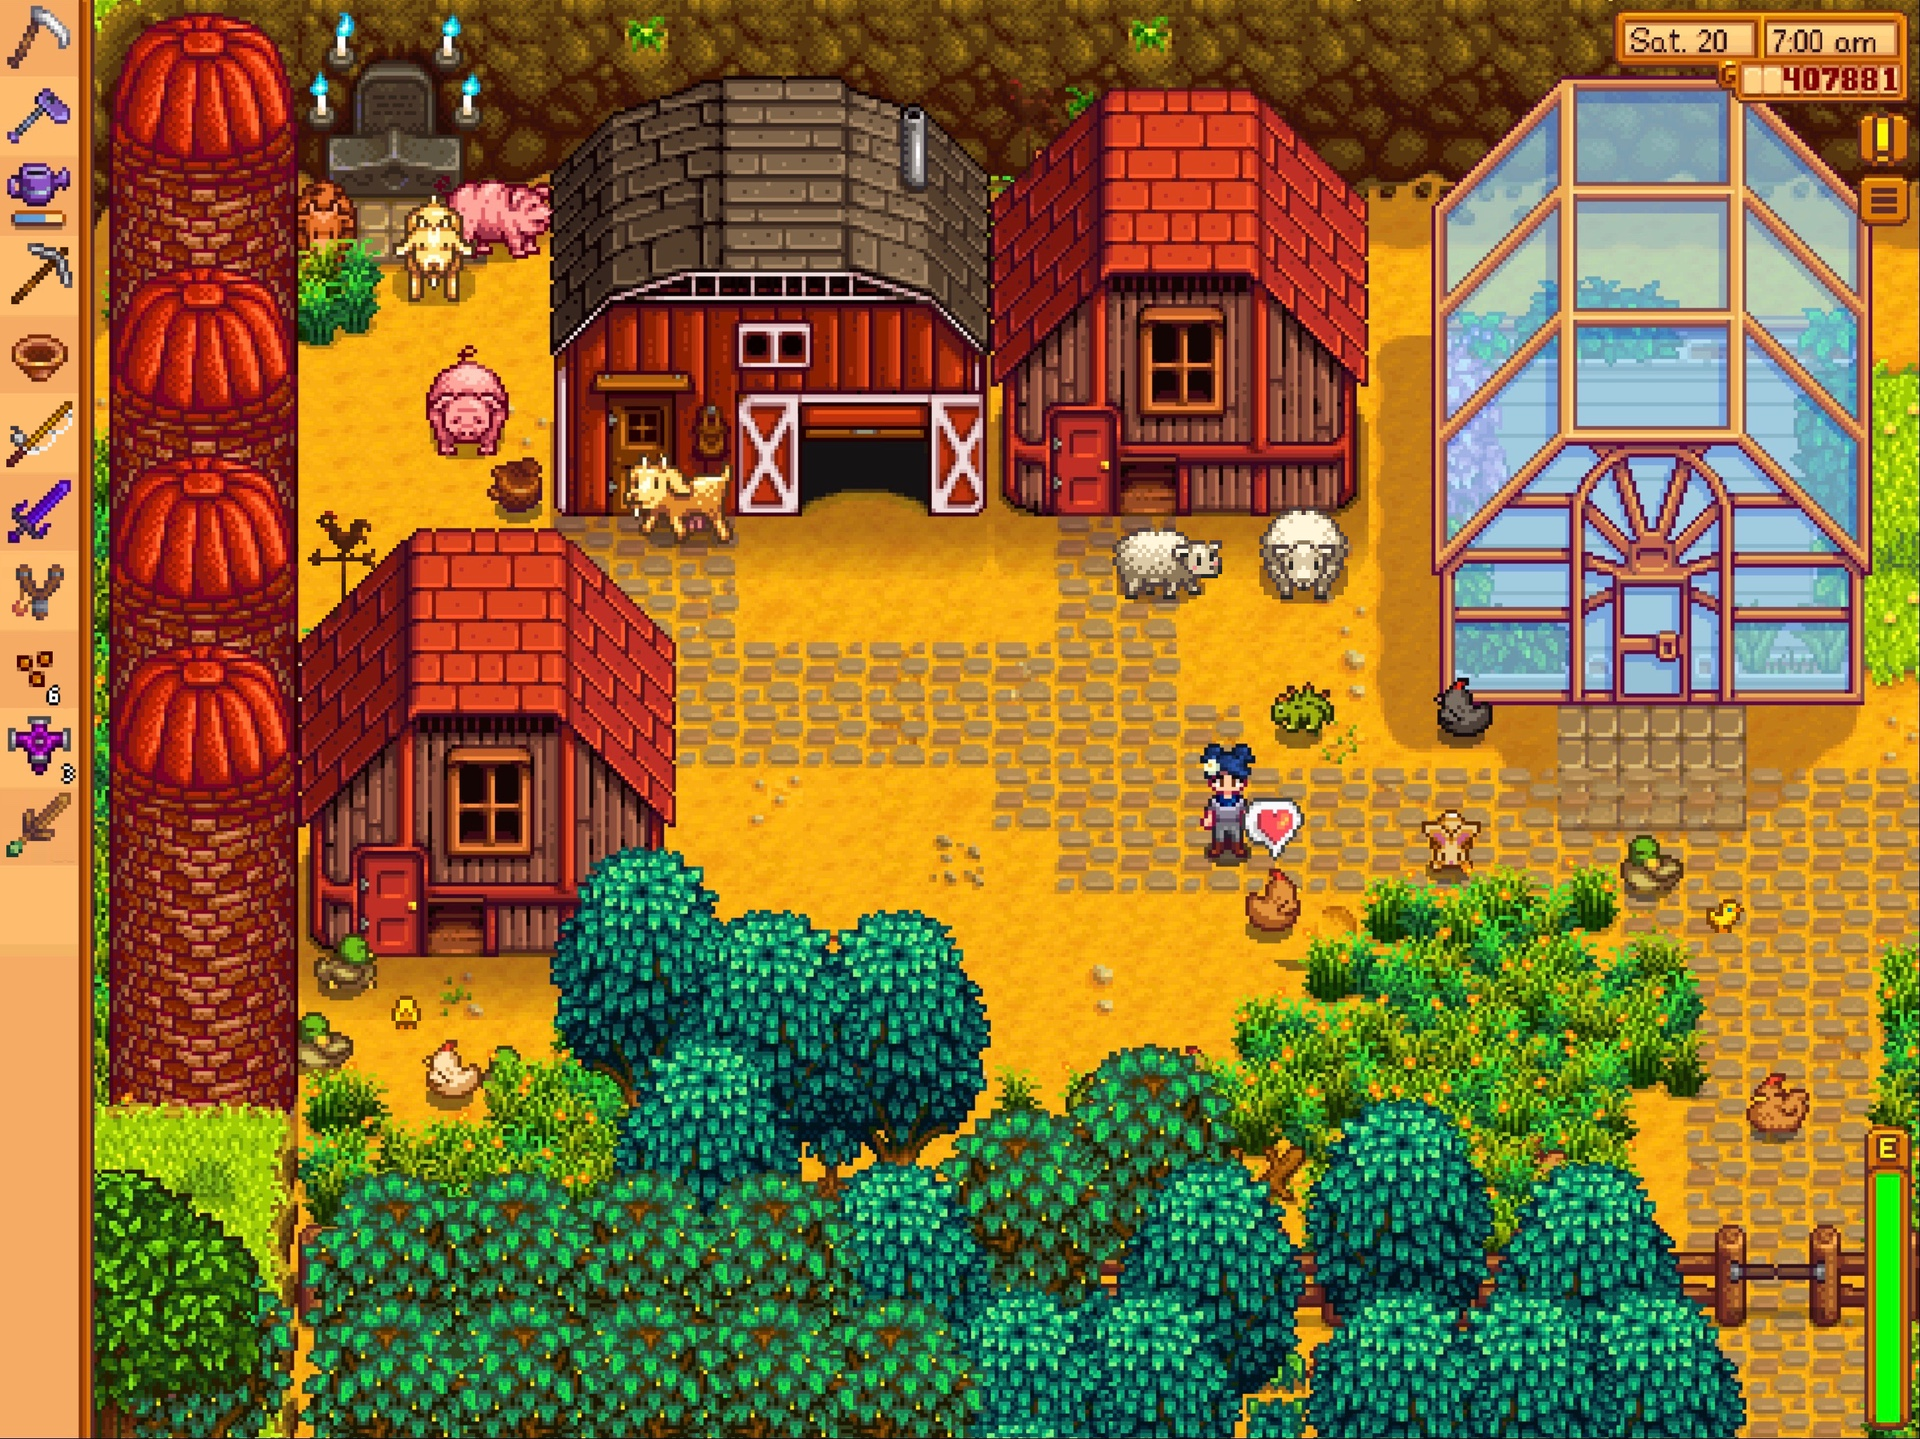 'Stardew Valley' Slowly Rolling Out Worldwide on the App Store